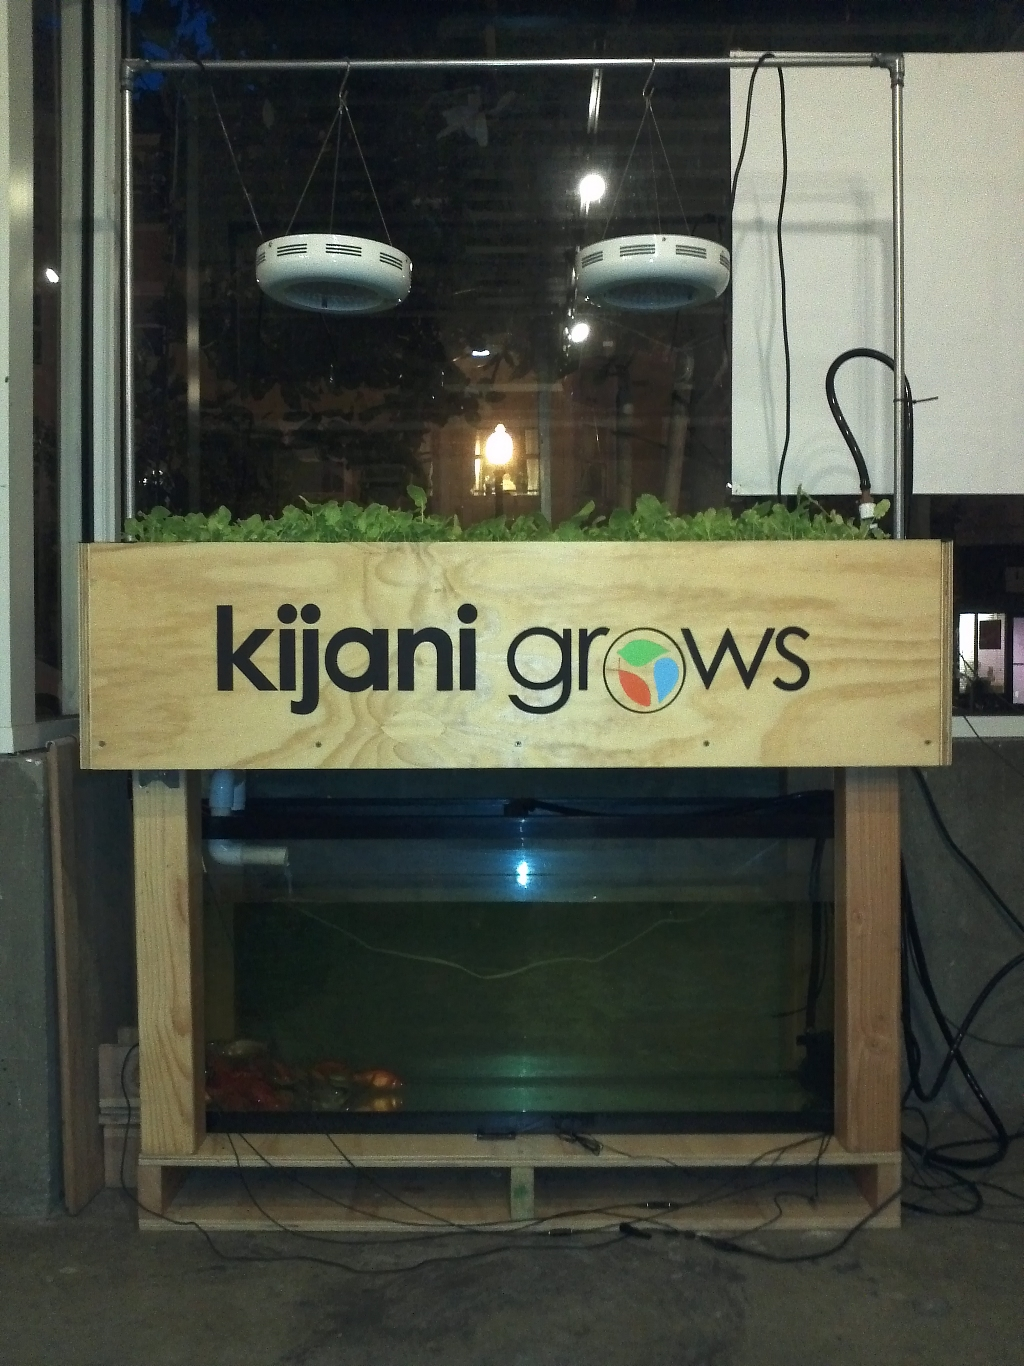 kijani_grows_smart_aquaponics_garden